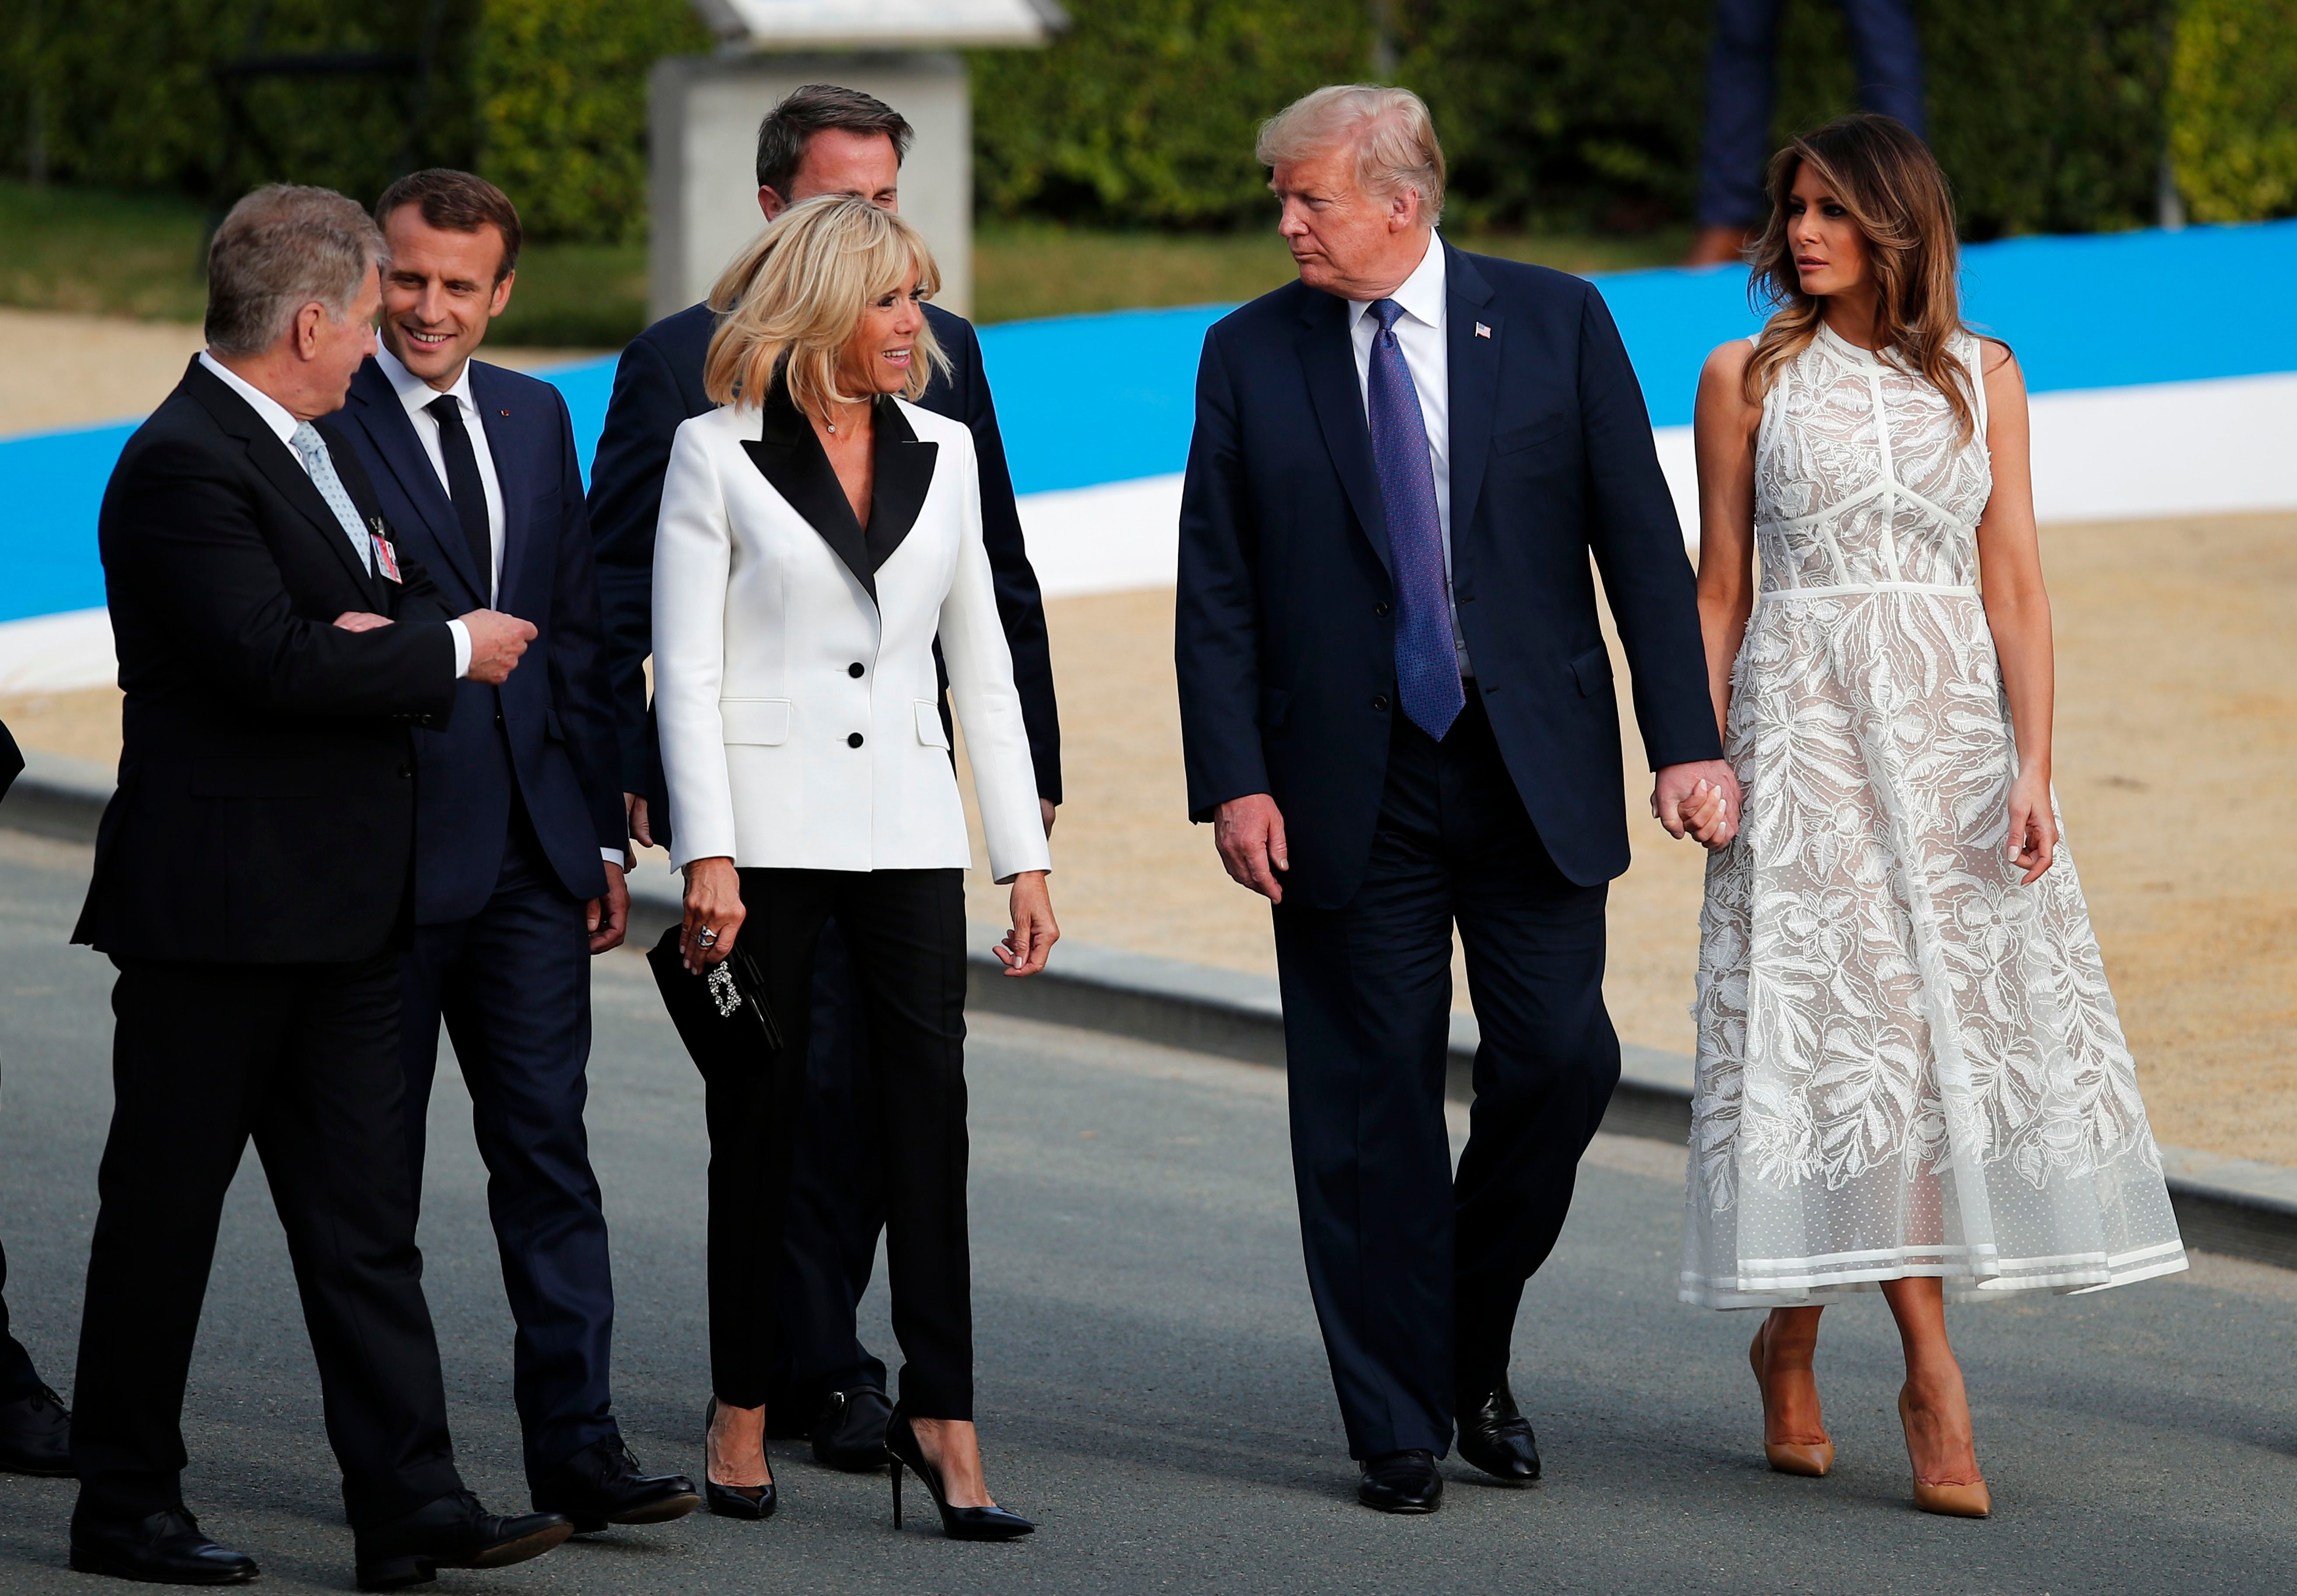 President Donald Trump with U.S. first lady Melania Trump walk with French President Emmanuel Macron and French first lady Brigitte Macron during a group photo of NATO heads of state and government at Park Cinquantenaire in Brussels on . NATO leaders gathered in Brussels Wednesday for a two-day summit to discuss Russia, Iraq and their mission in Afghanistan